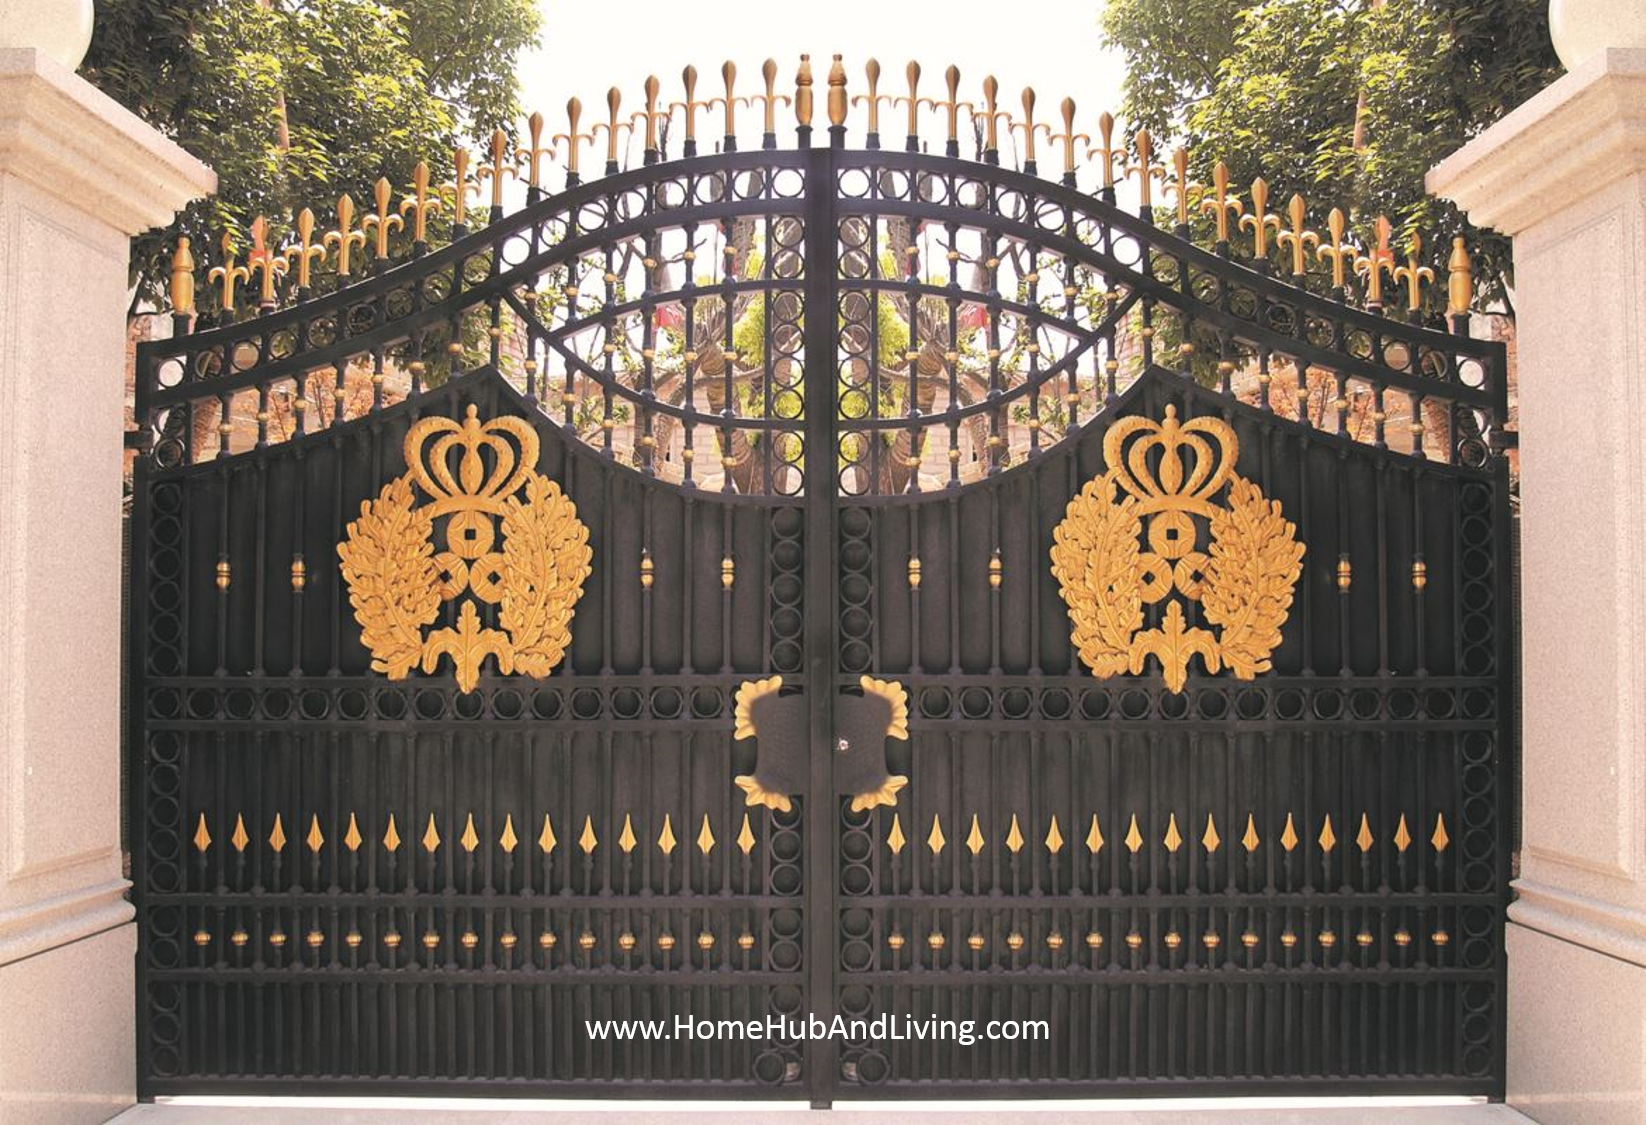 Grand Entrance French design wrought iron Gate FZY TM024 Custom Swing or Slide Driveway Gate and Gate Ornamentals for Singapore Commercial and Residential Landed Private Properties: Stainless Steel, Wrought Iron, Mild Steel and Timber / Aluminium Wood Grain Designs